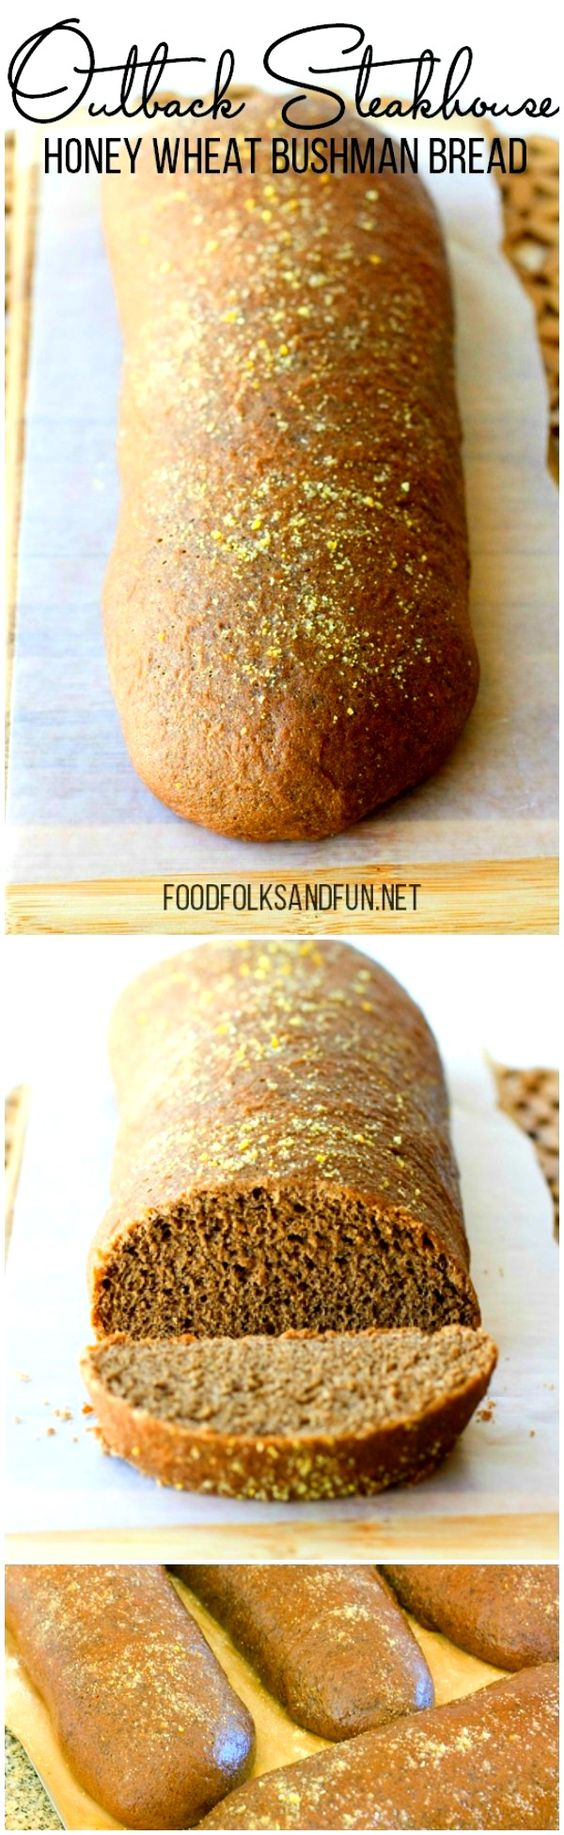 Honey Wheat Bushman Bread Recipe – an Outback Steakhouse ...